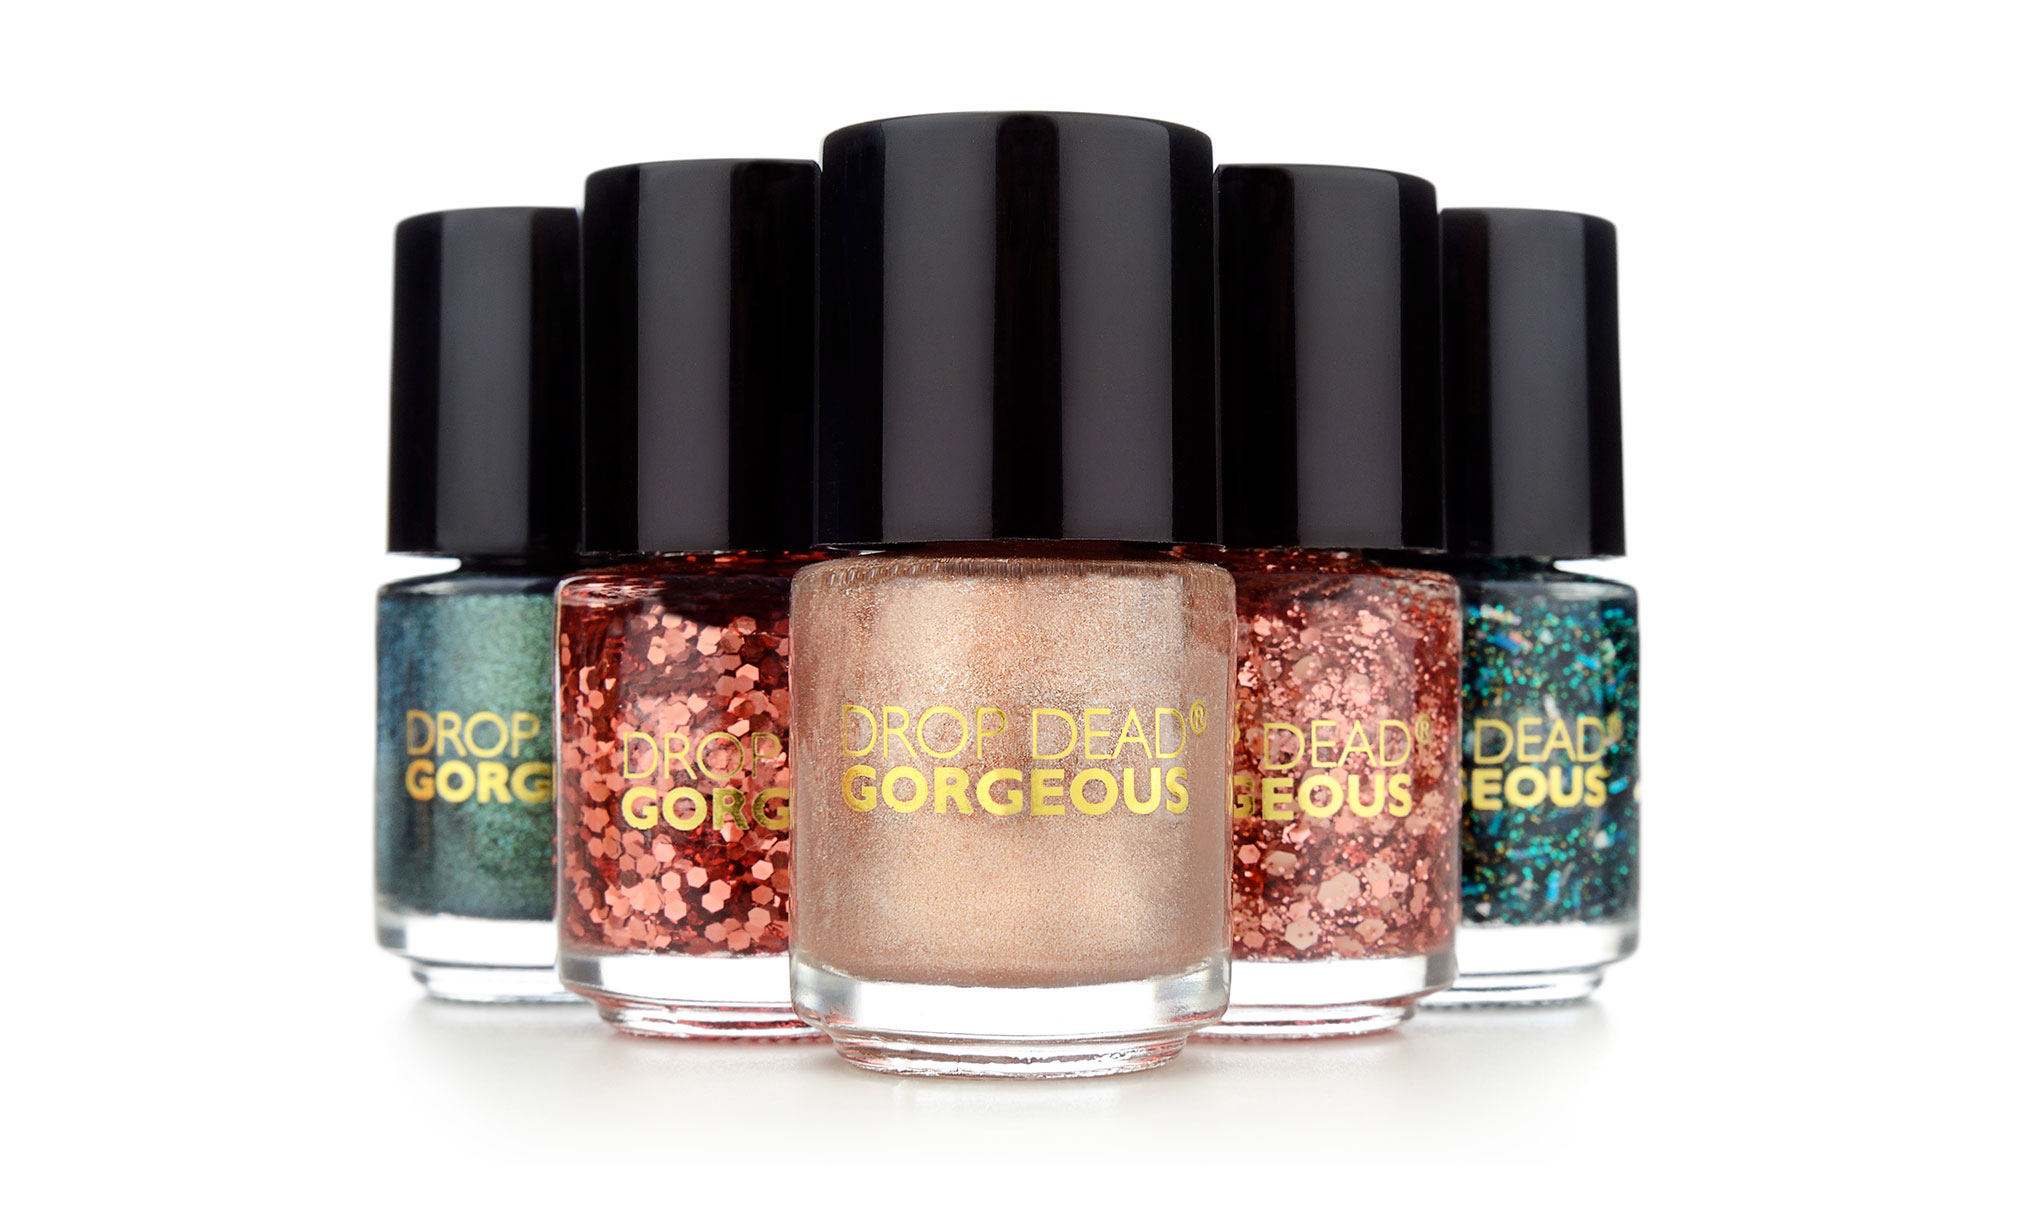 Image shows x6 'Drop Dean Gorgeous' nail polishes for Tesco. Created by packaging design agency - Flipflop Design Ltd.